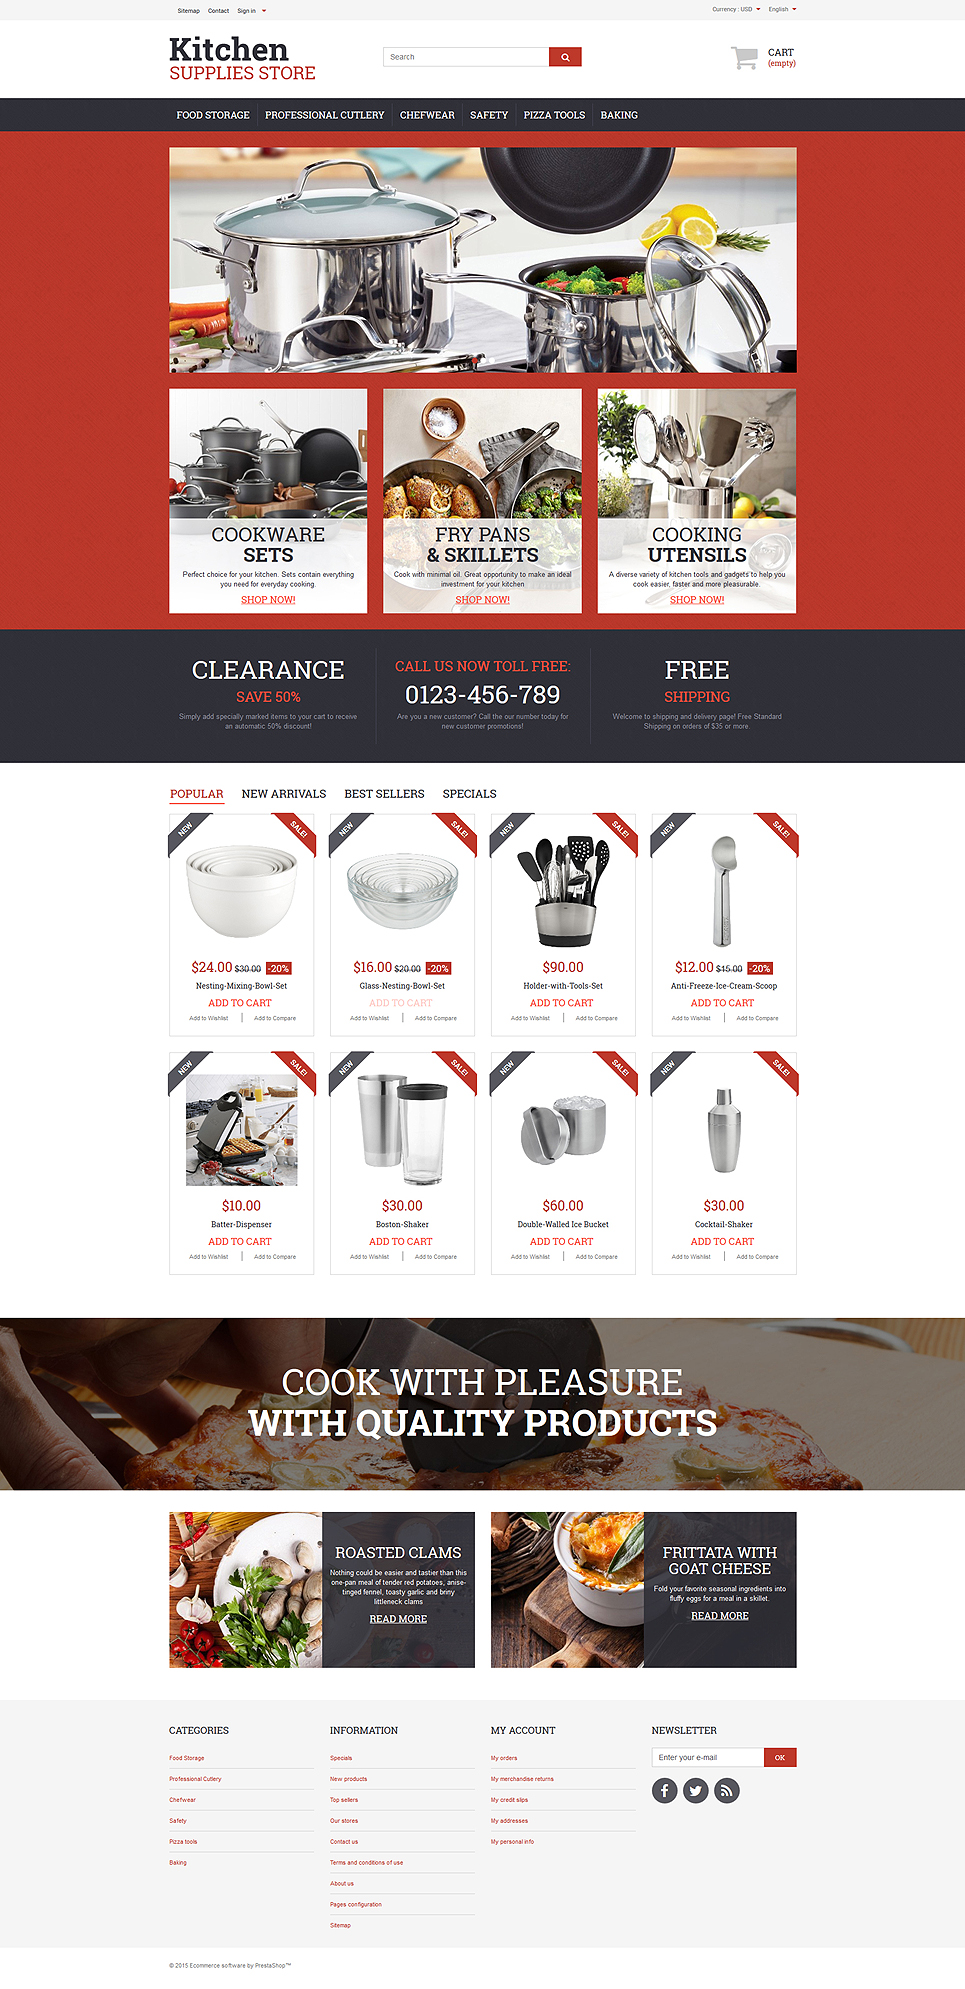 20 Kitchenware Cookware And Knife Store Ecommerce